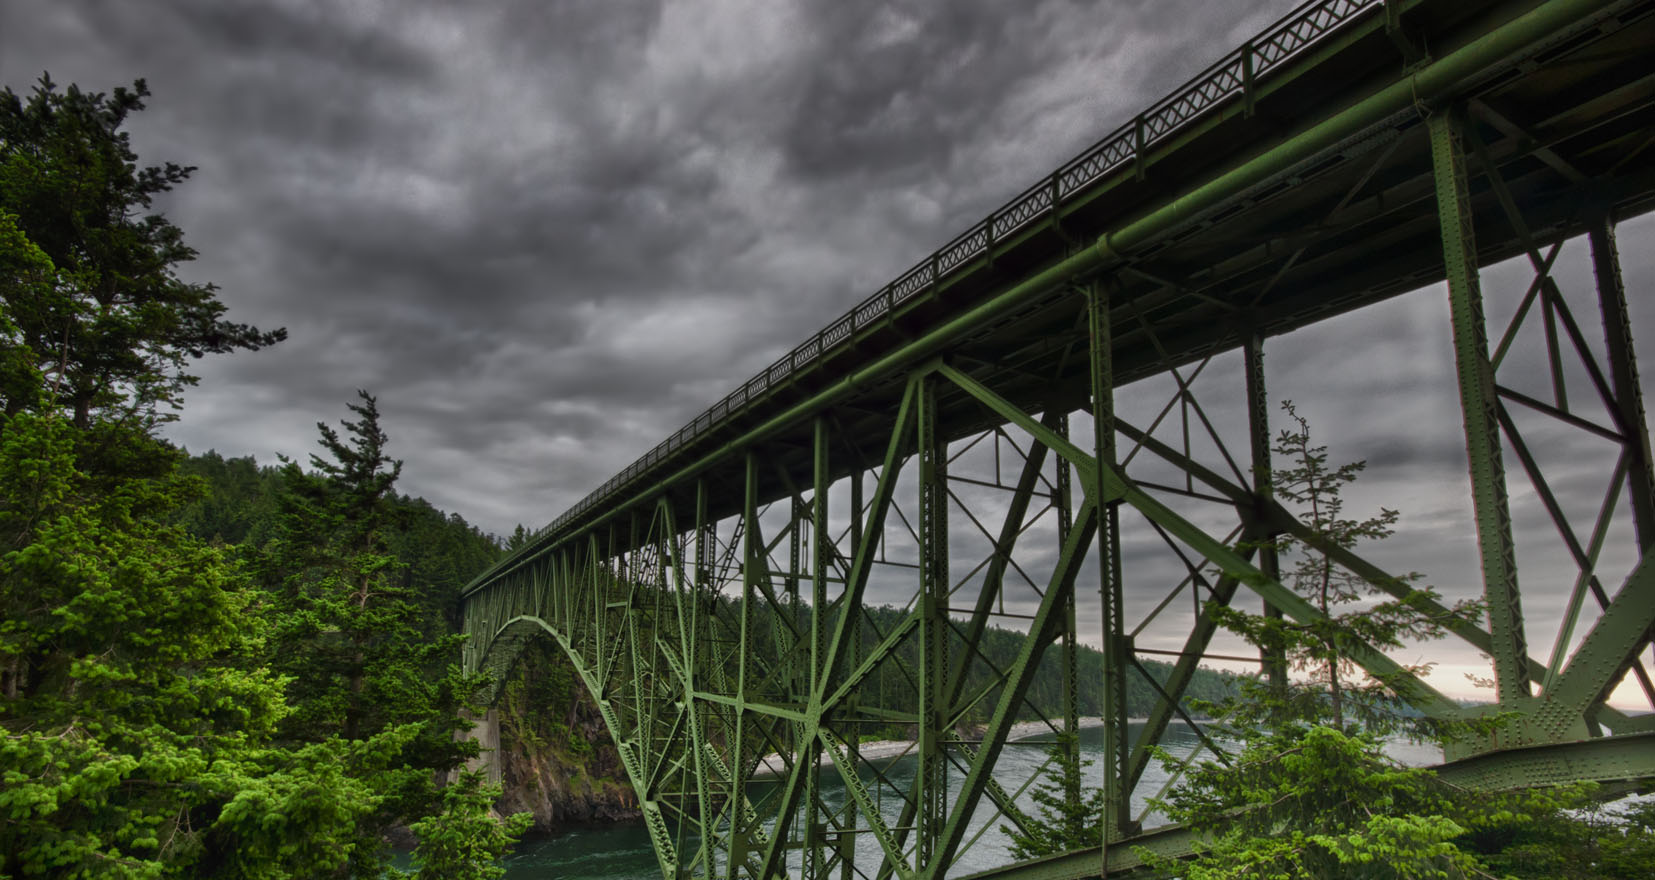 deception pass bridge oak harbor wa whidbey island